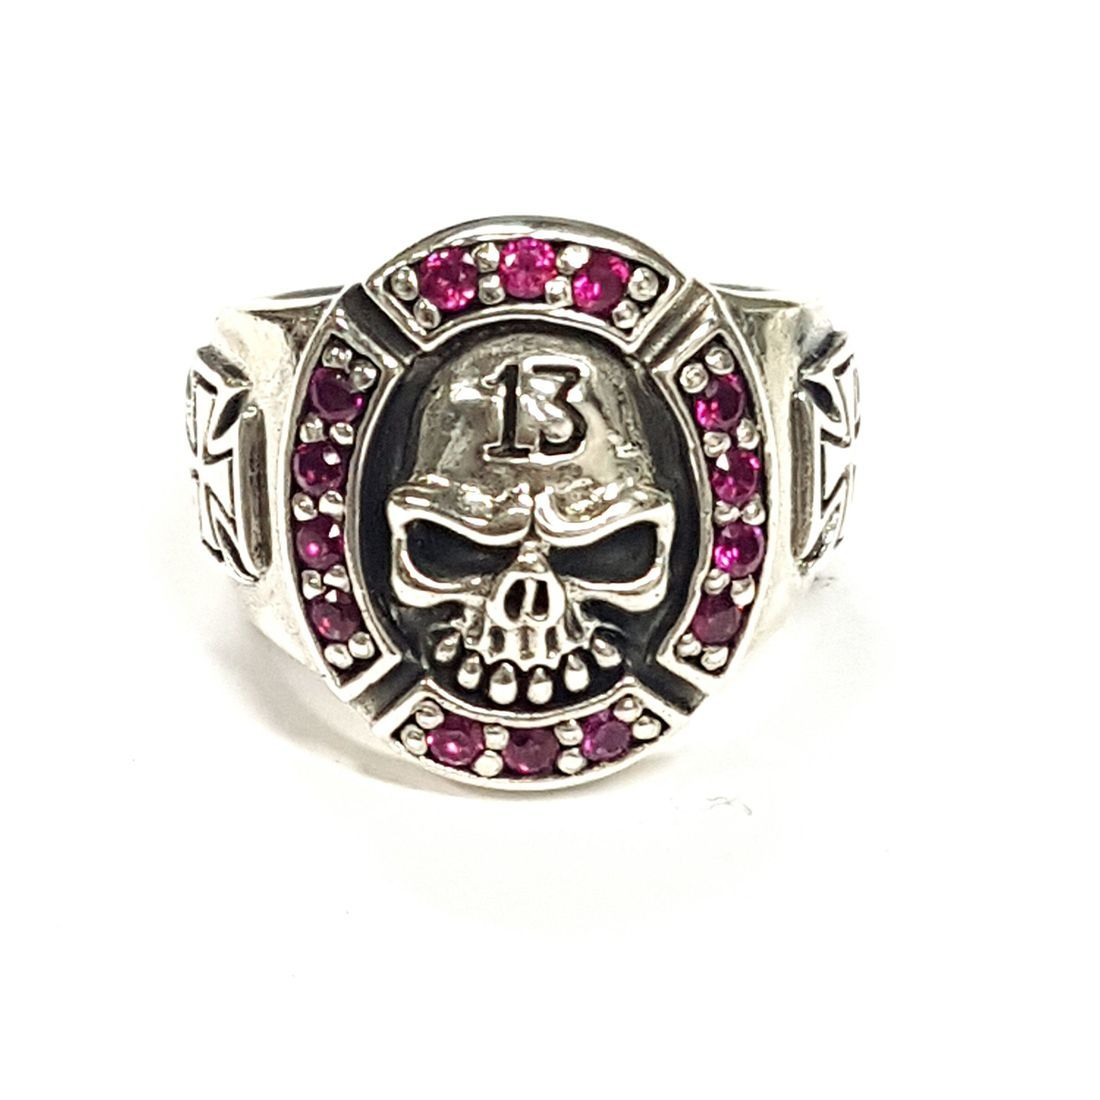 Pink Crystal 13 Skull Ring  available at Kazbah online and our Leicester City Centre shop